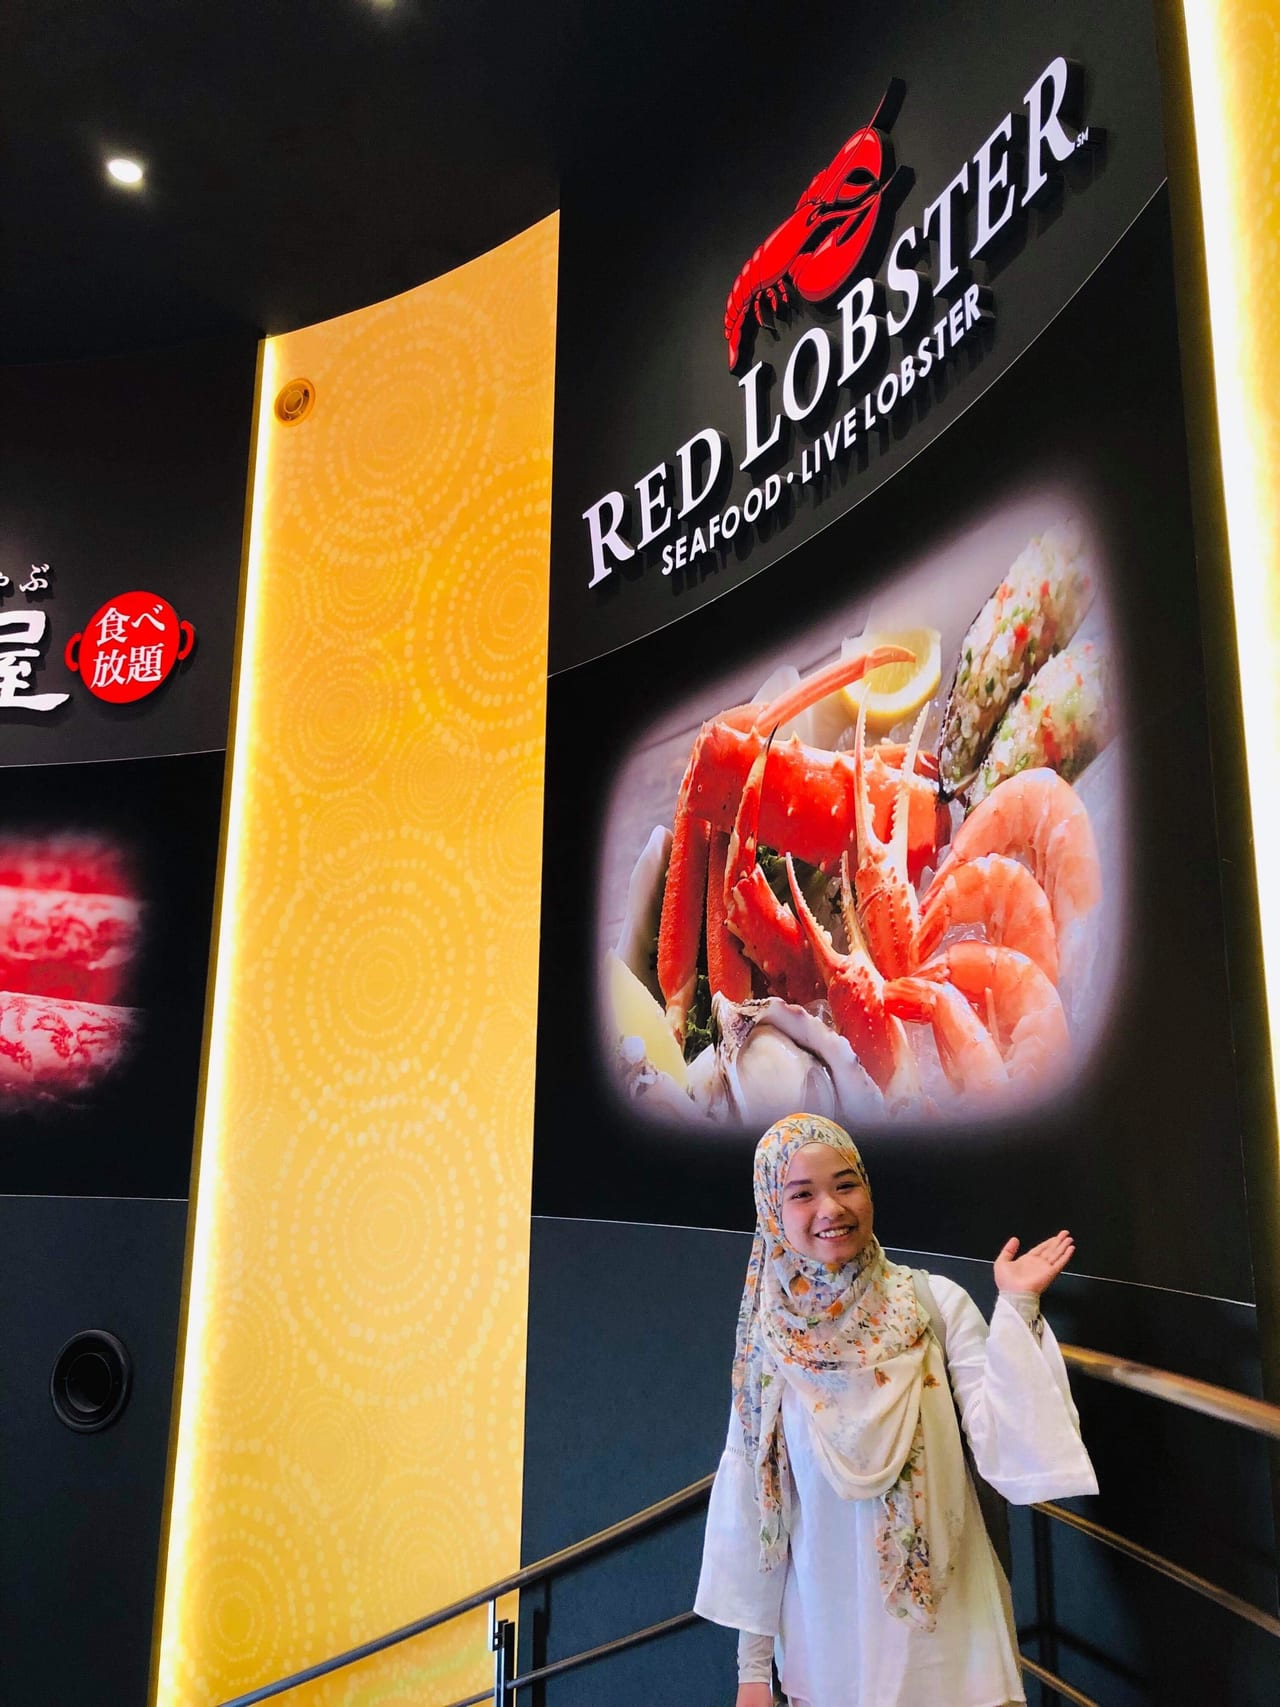 Muslim Friendly Food At Red Lobster Tokyo Disney Resort Food Diversity Today